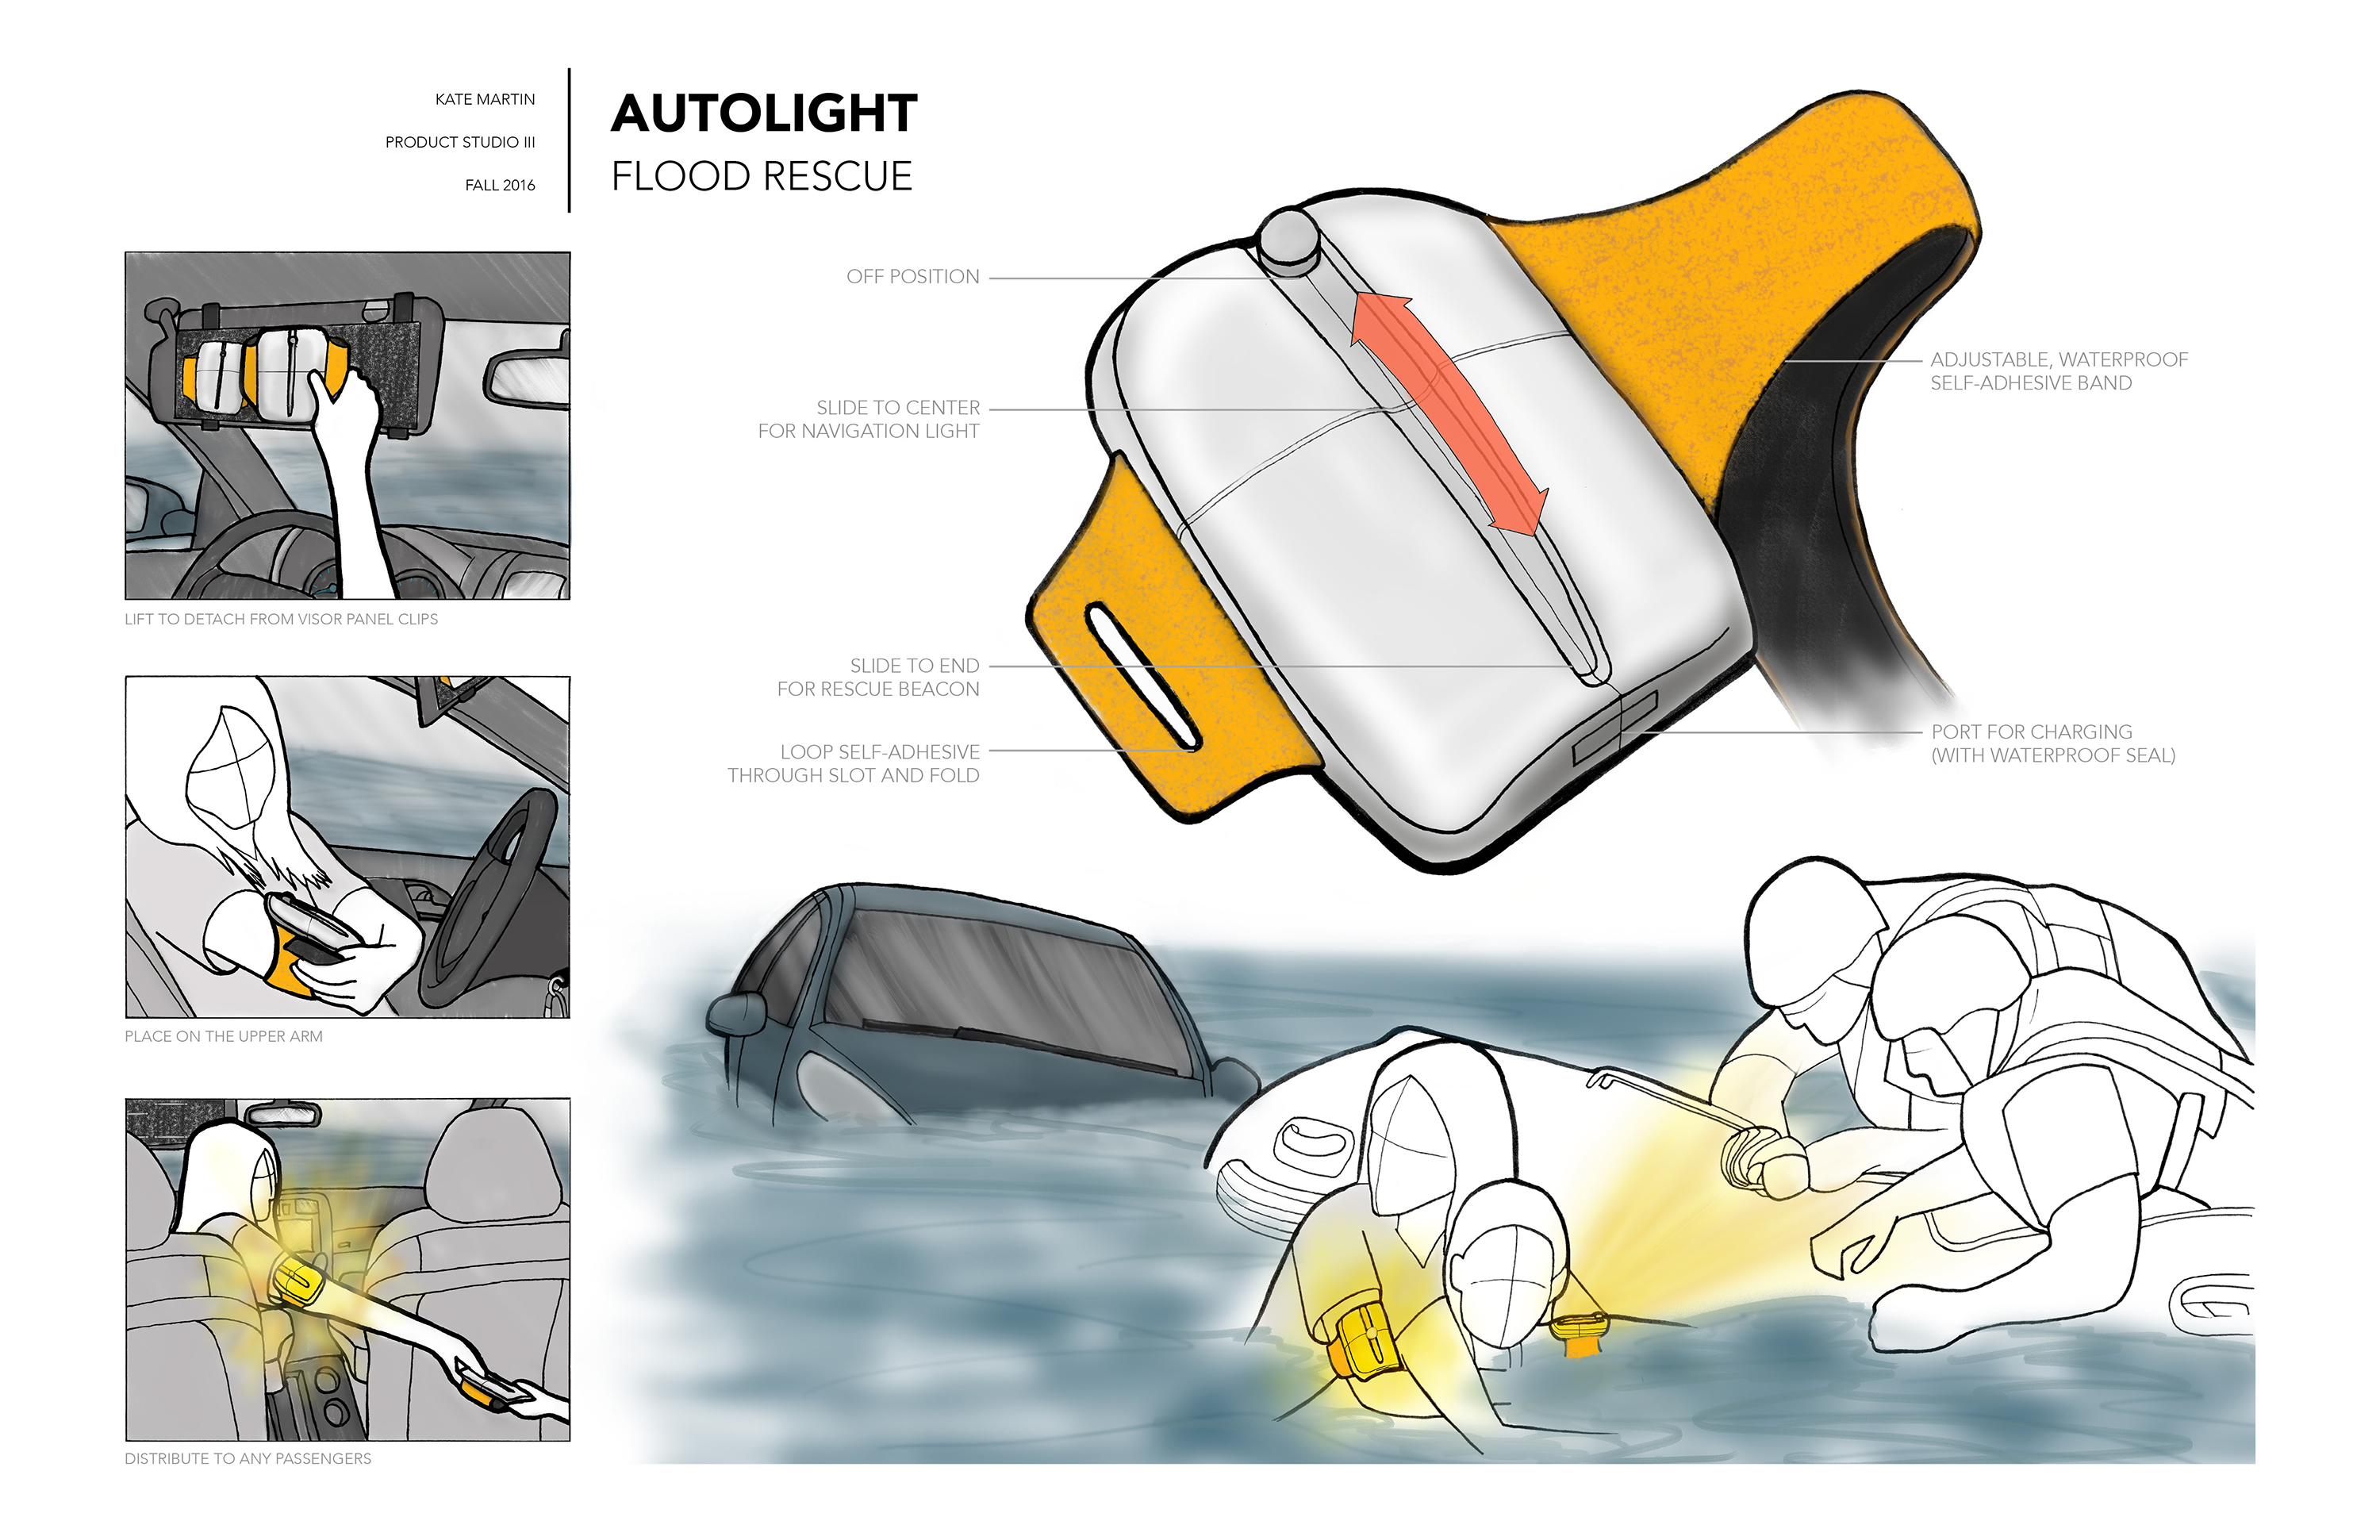 AutoLight: Flood Rescue Beacon